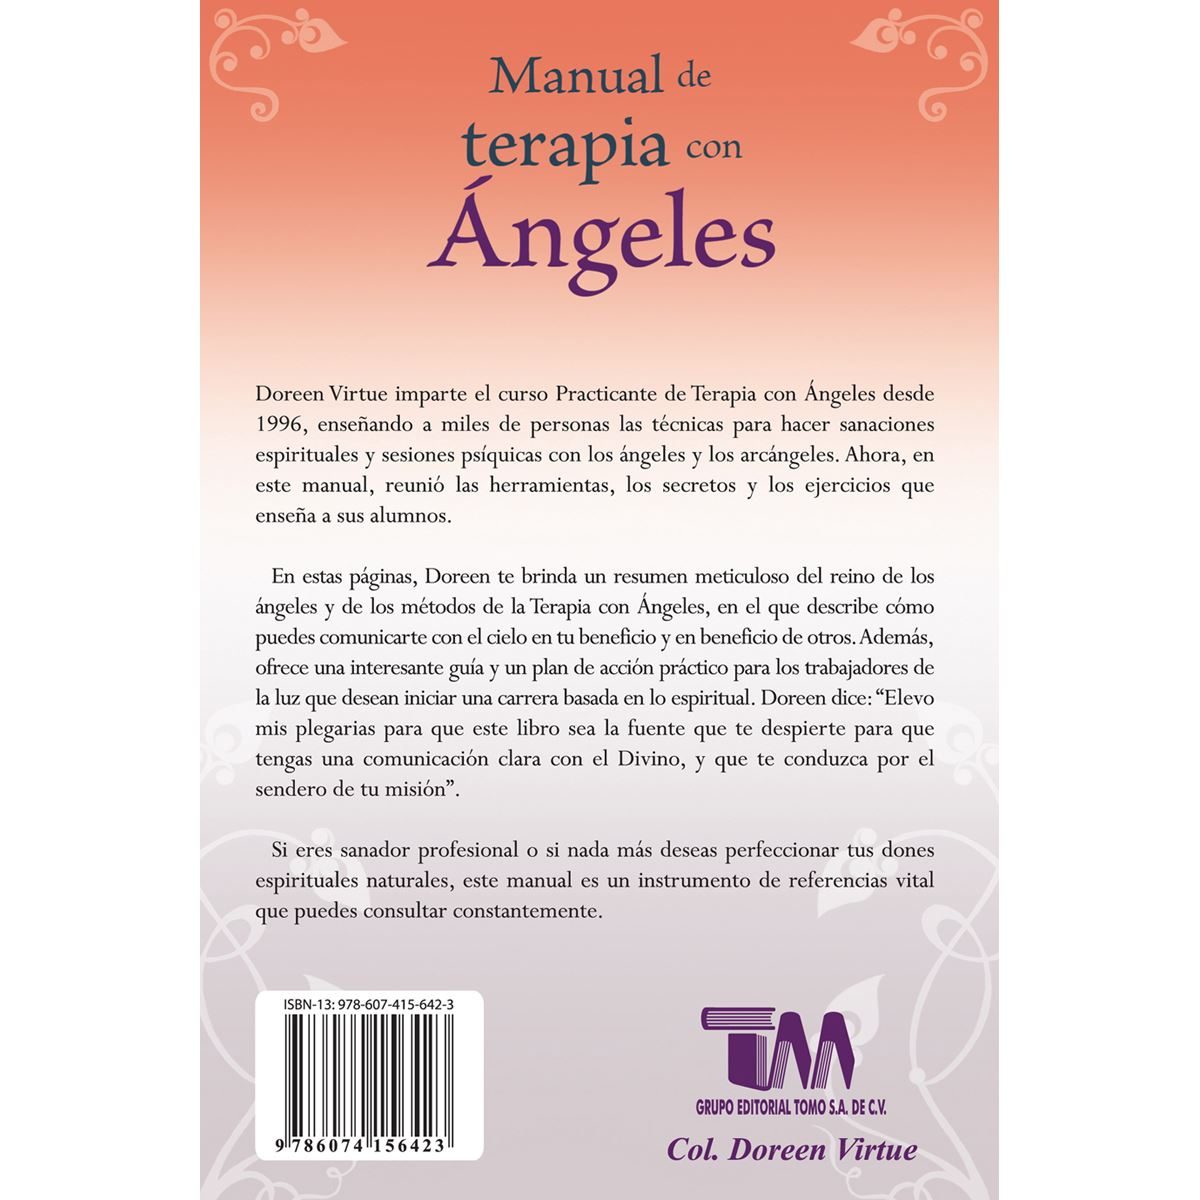 Manual de terapia con Ángeles Libro - Sanborns